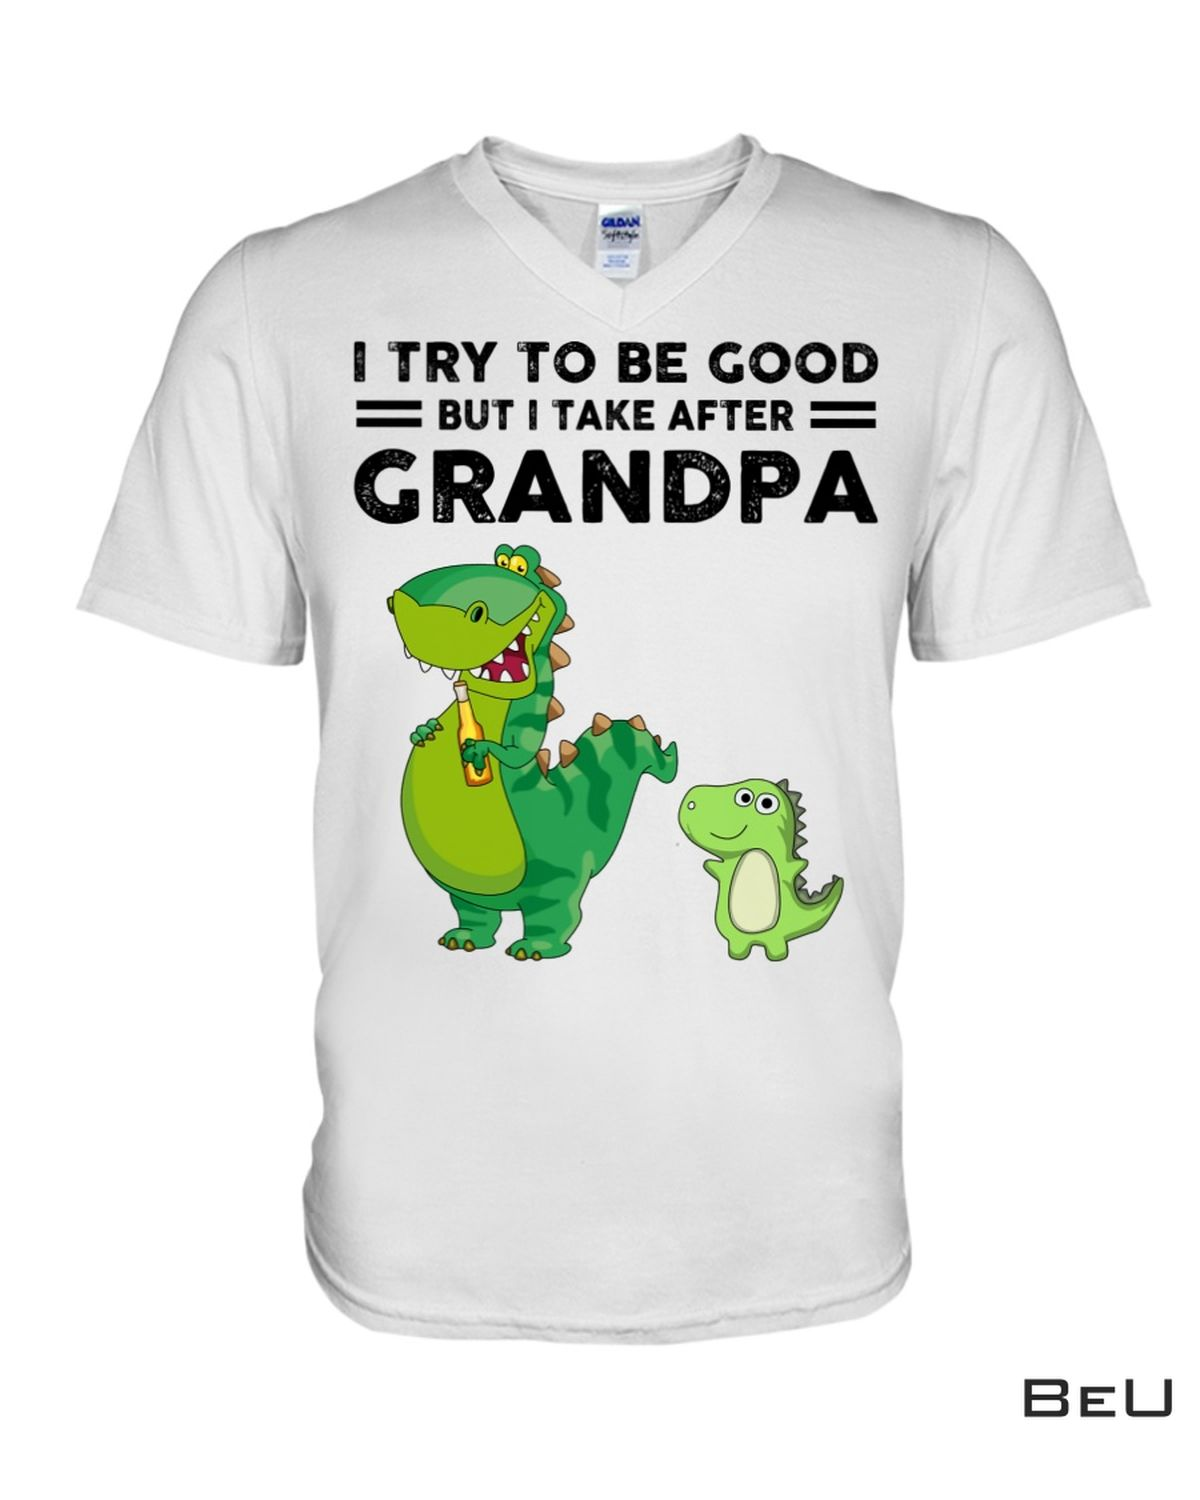 I Try To be Good But I Take After Grandpa Shirt x